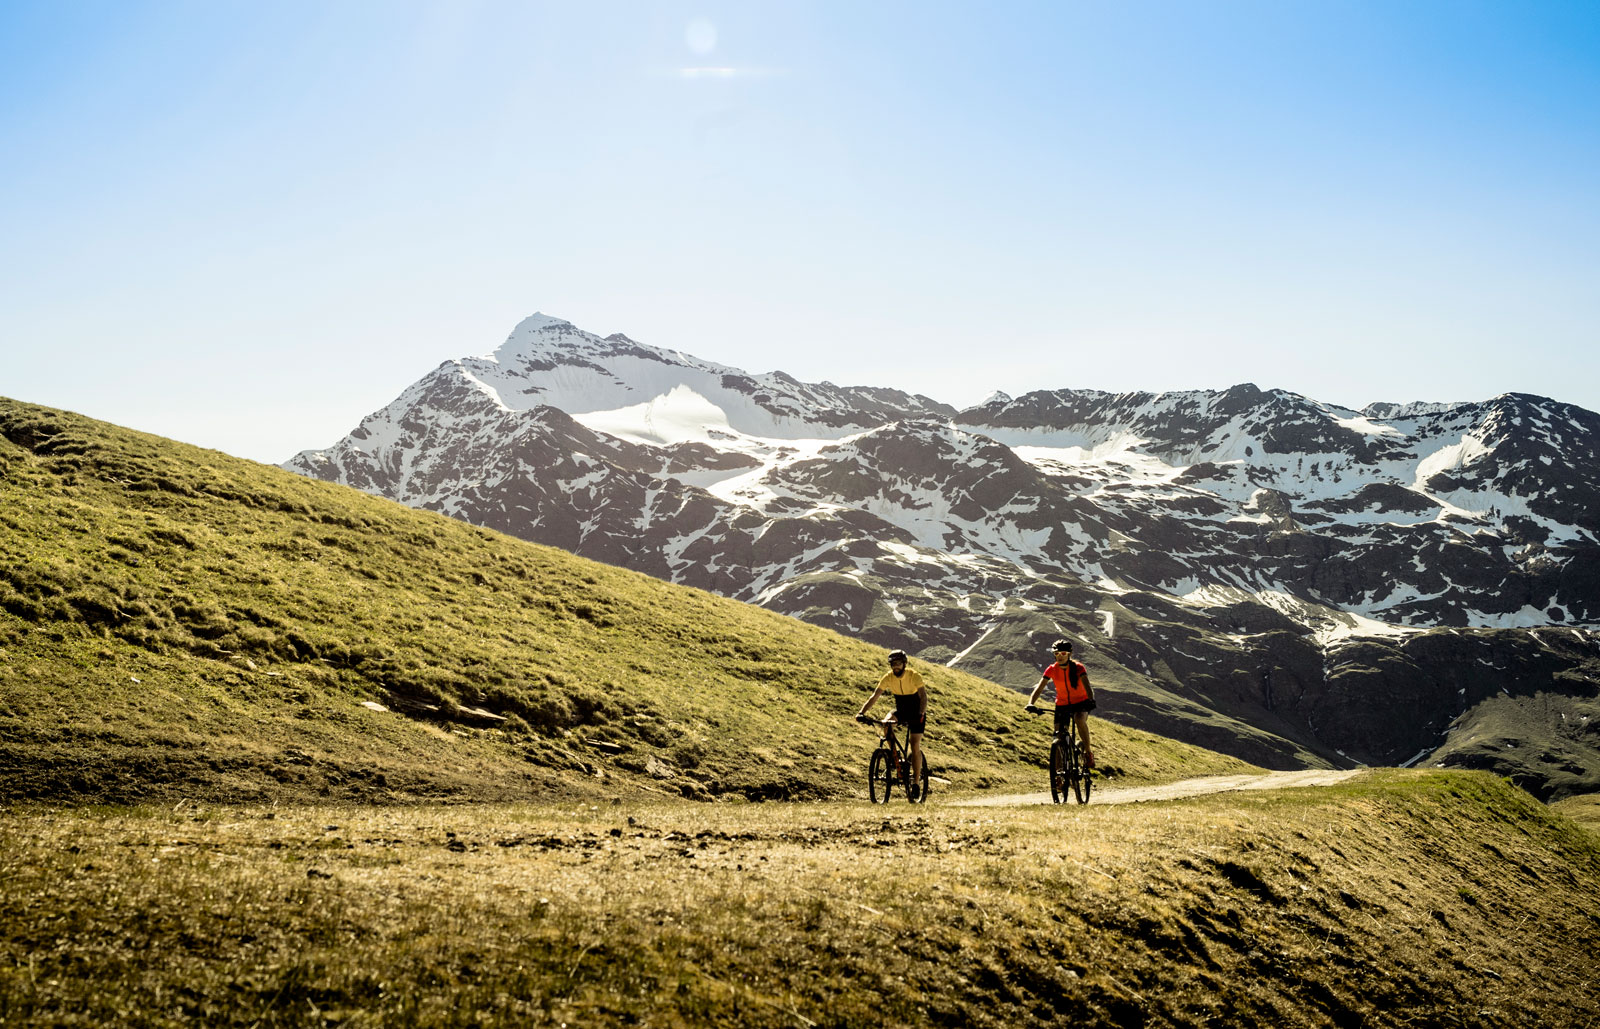 Cyclists on a mountain path with snowy peaks in the background